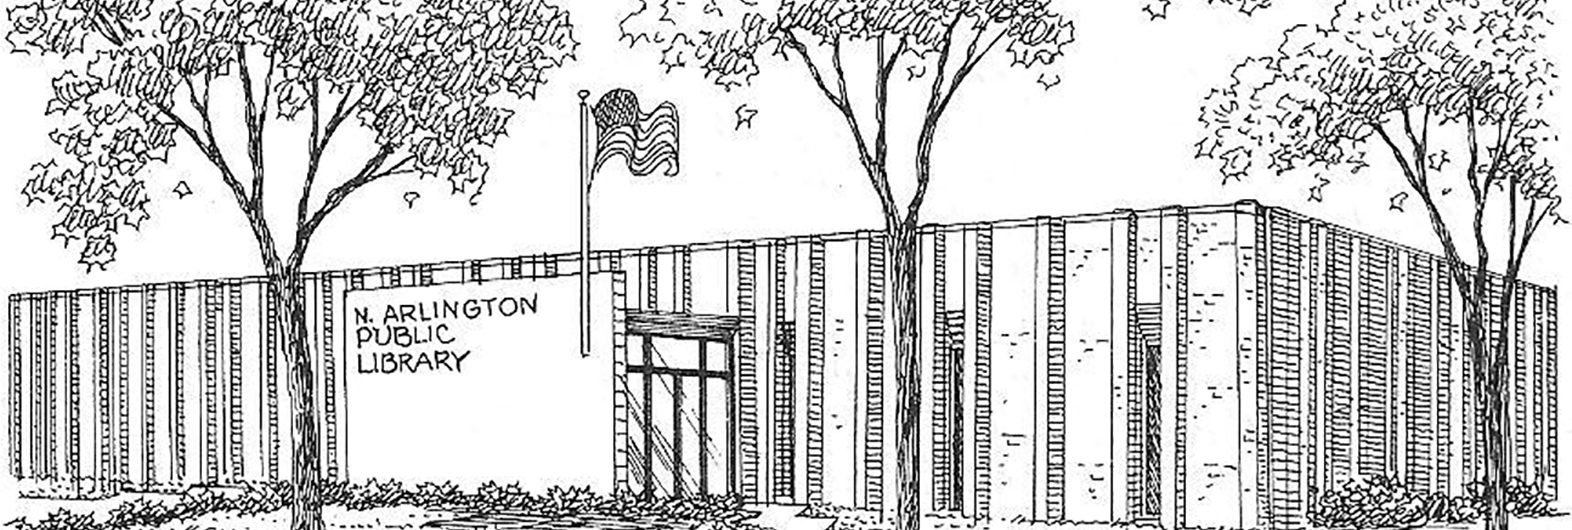 North Arlington Public Library Sketch